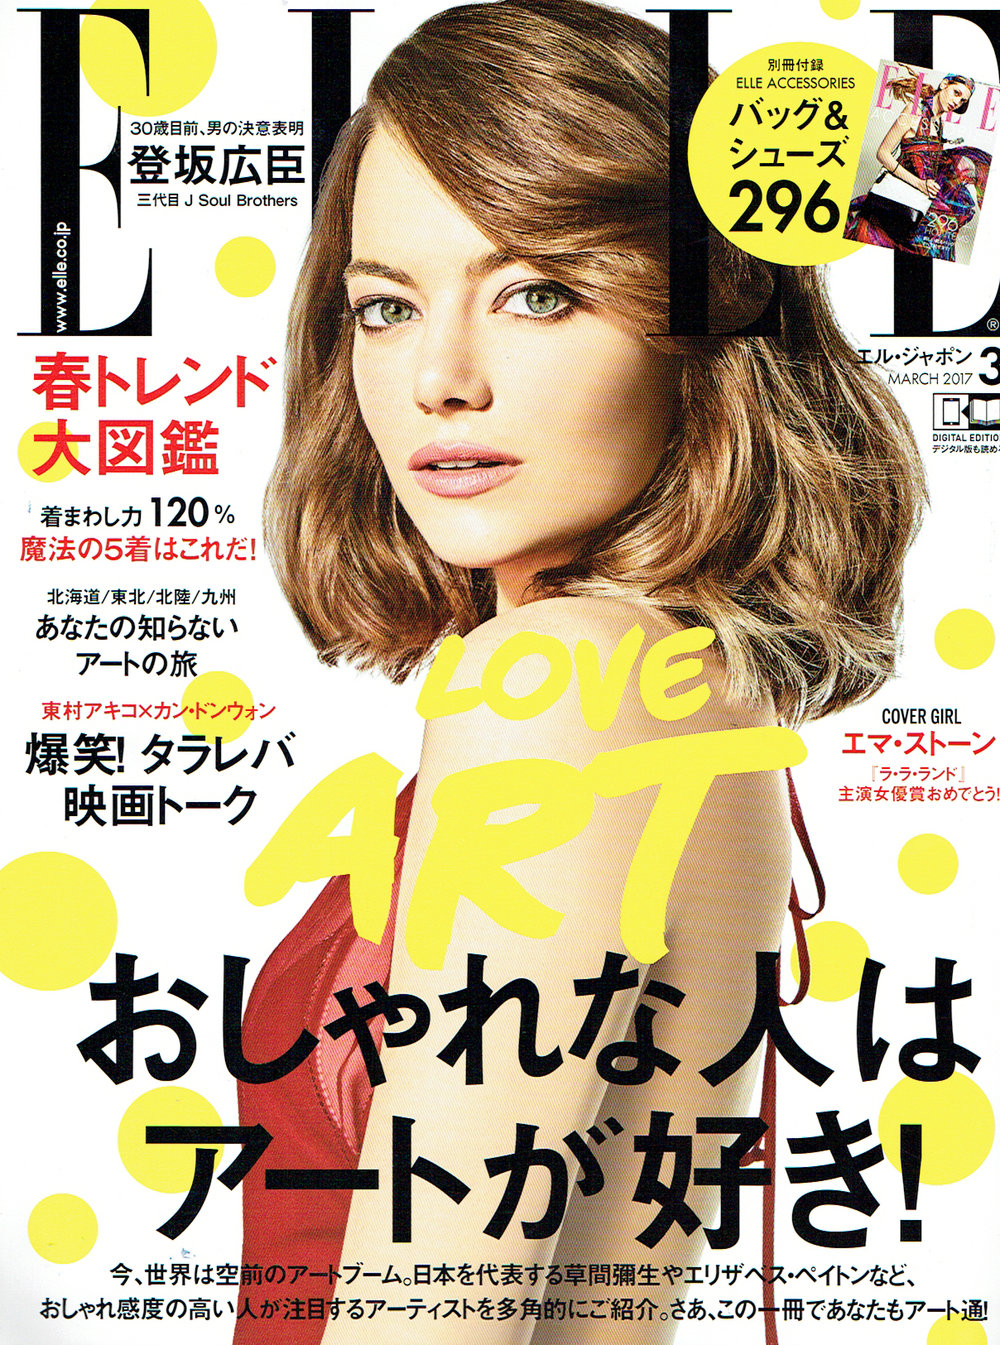 Designer sacred heart silk scarf as seen in Elle Japan